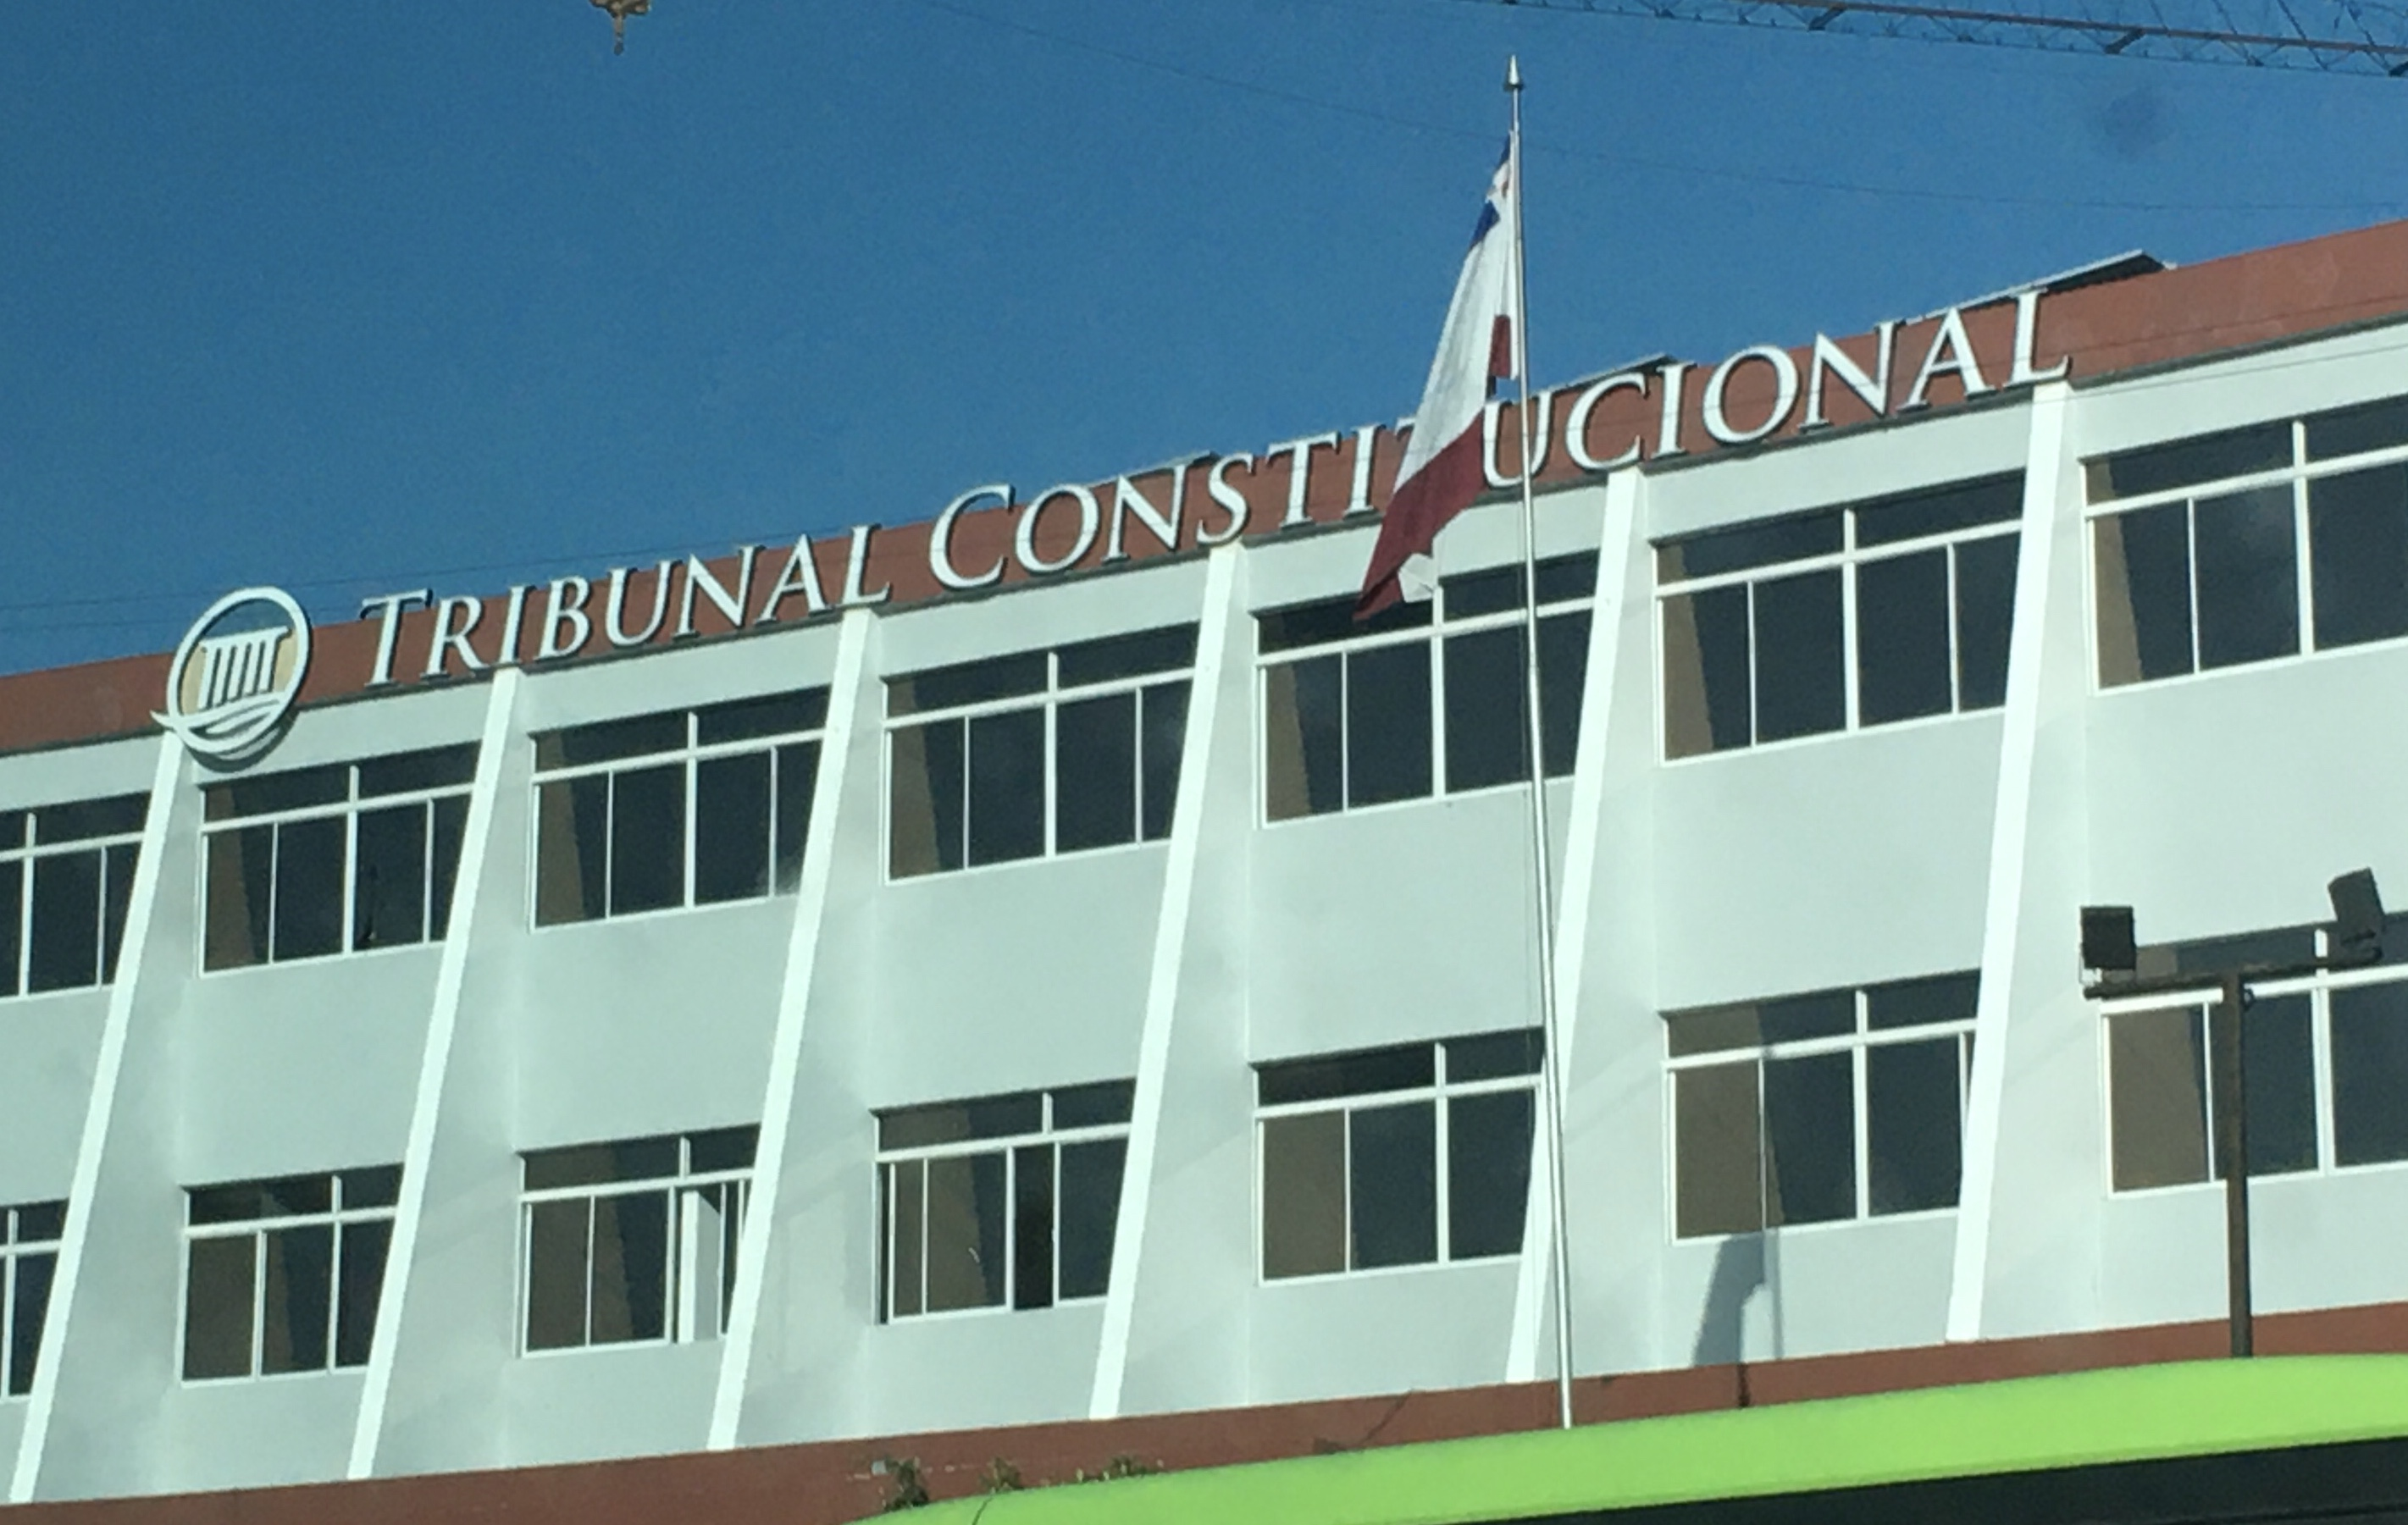 TC decide expedientes sobre revisión de decisiones jurisdiccionales y acción directa de inconstitucionalidad